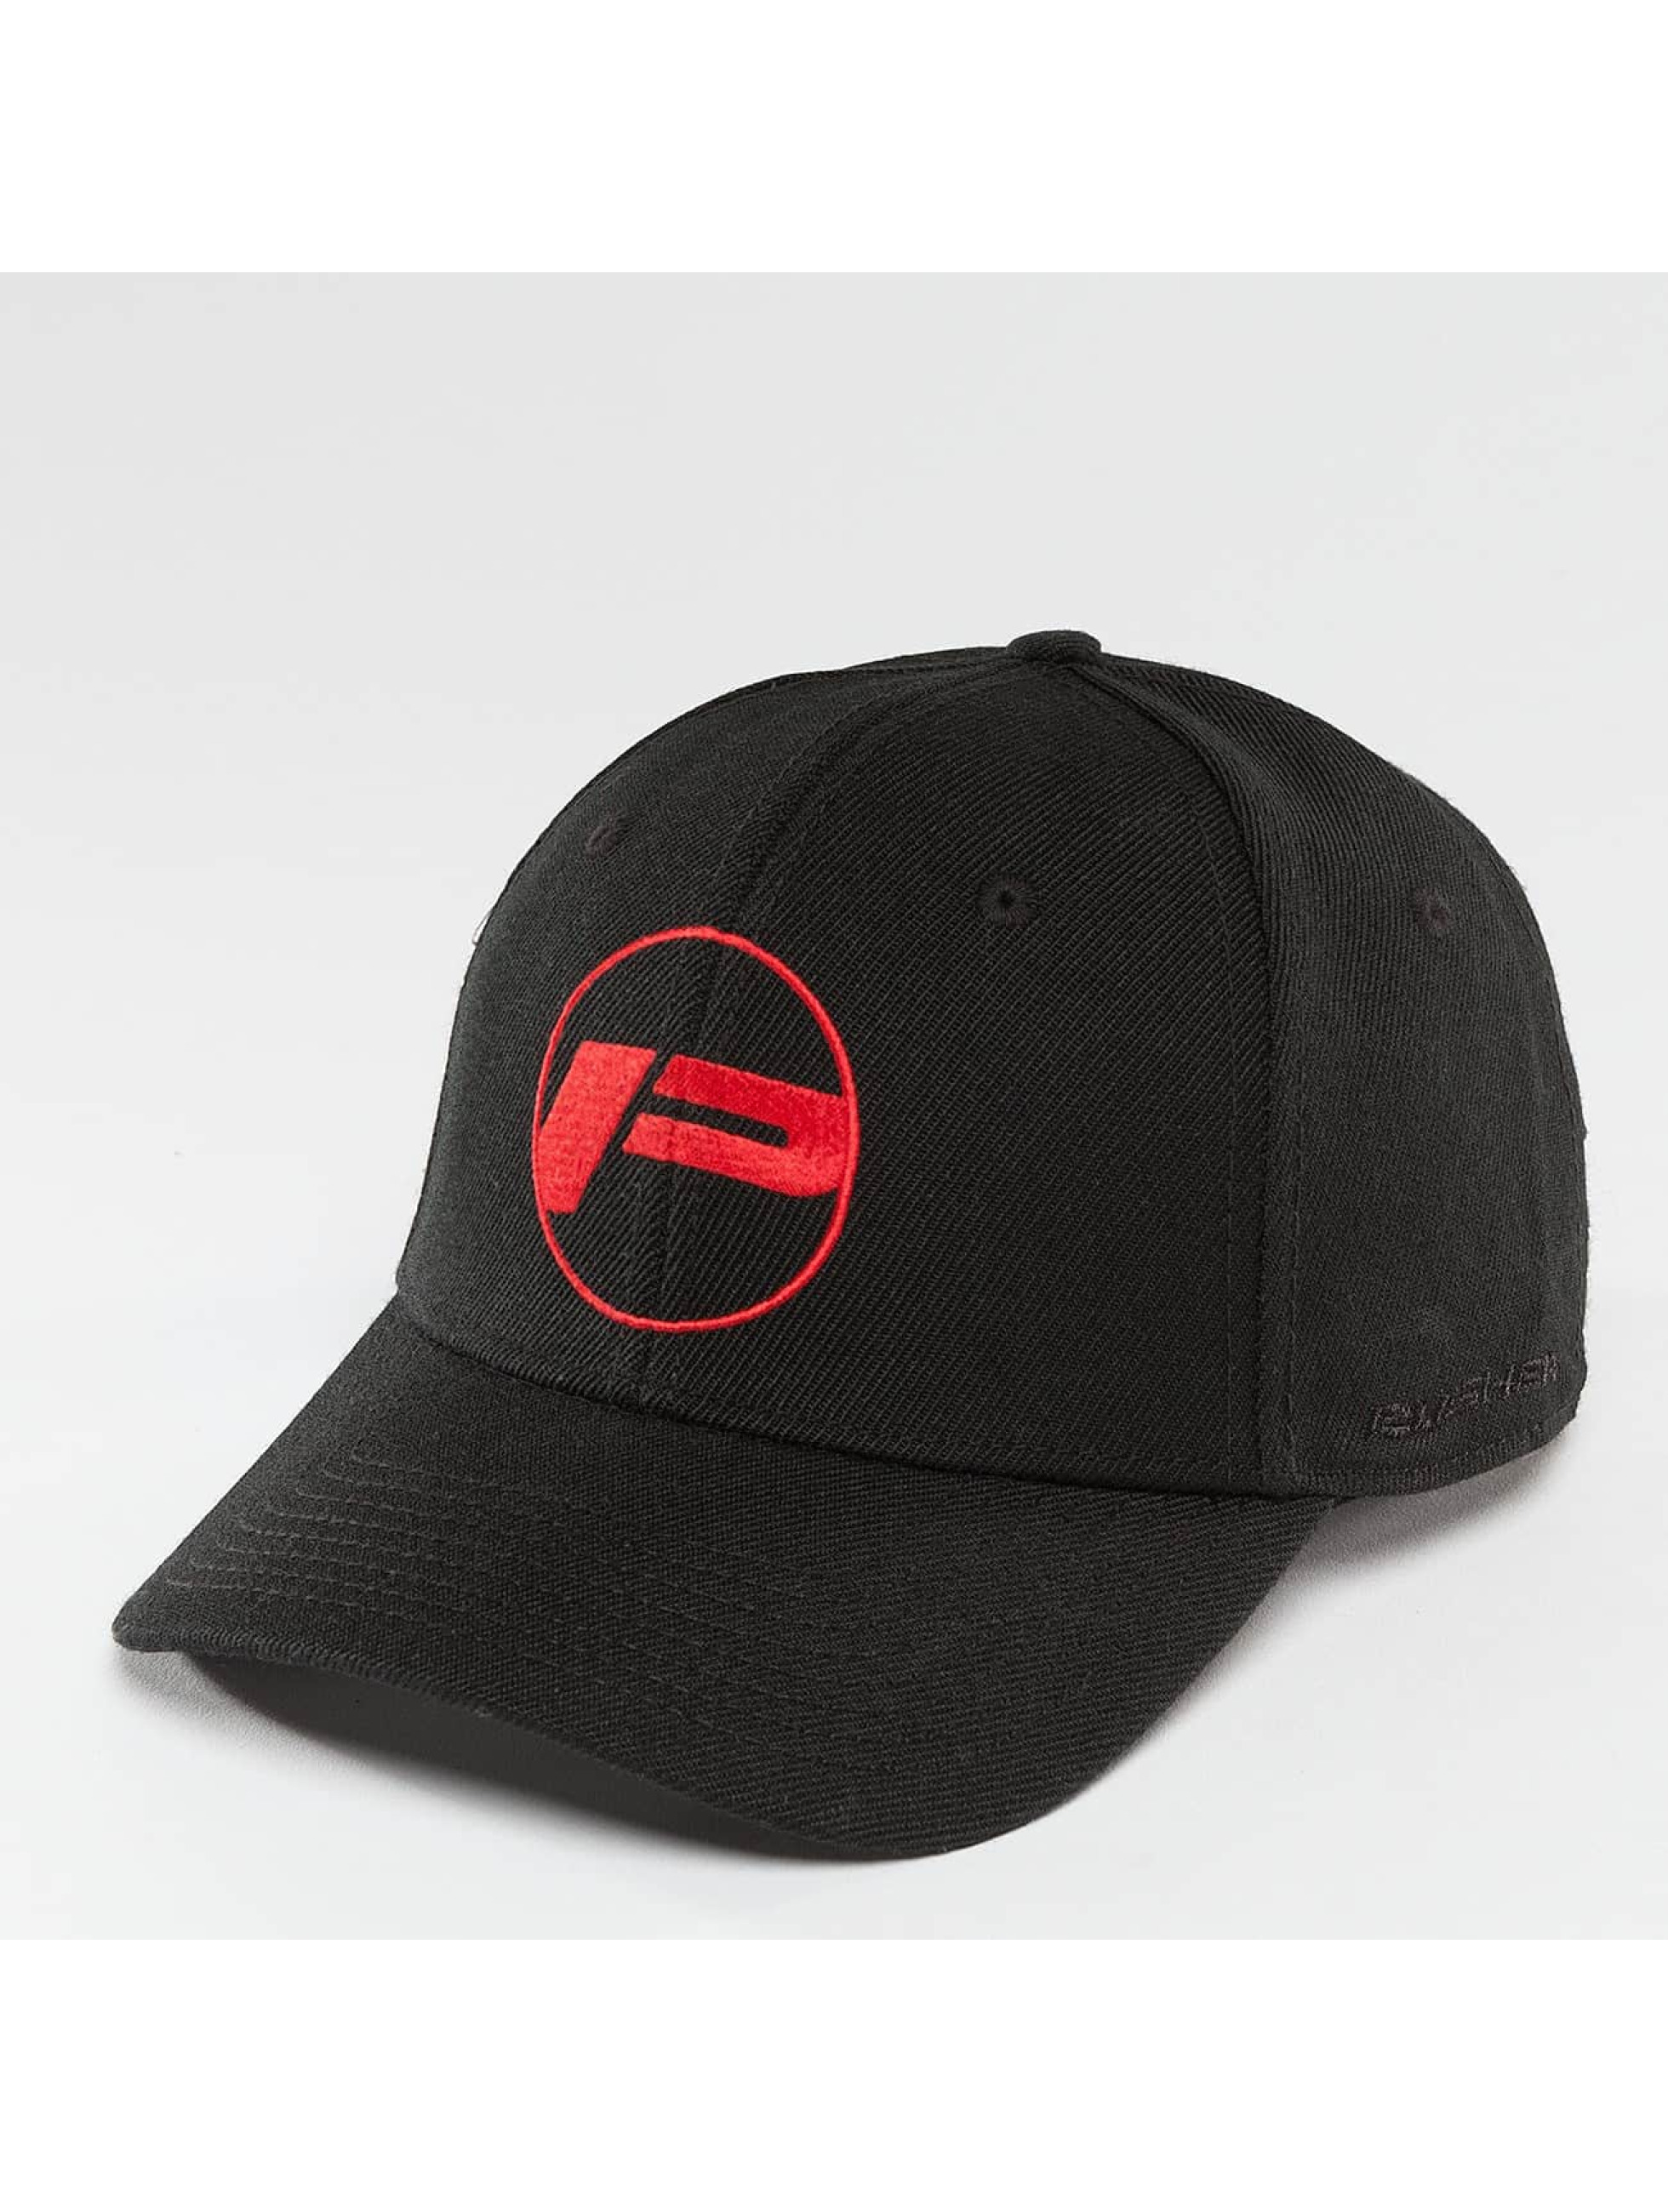 Pusher Apparel Snapback Caps Polo musta